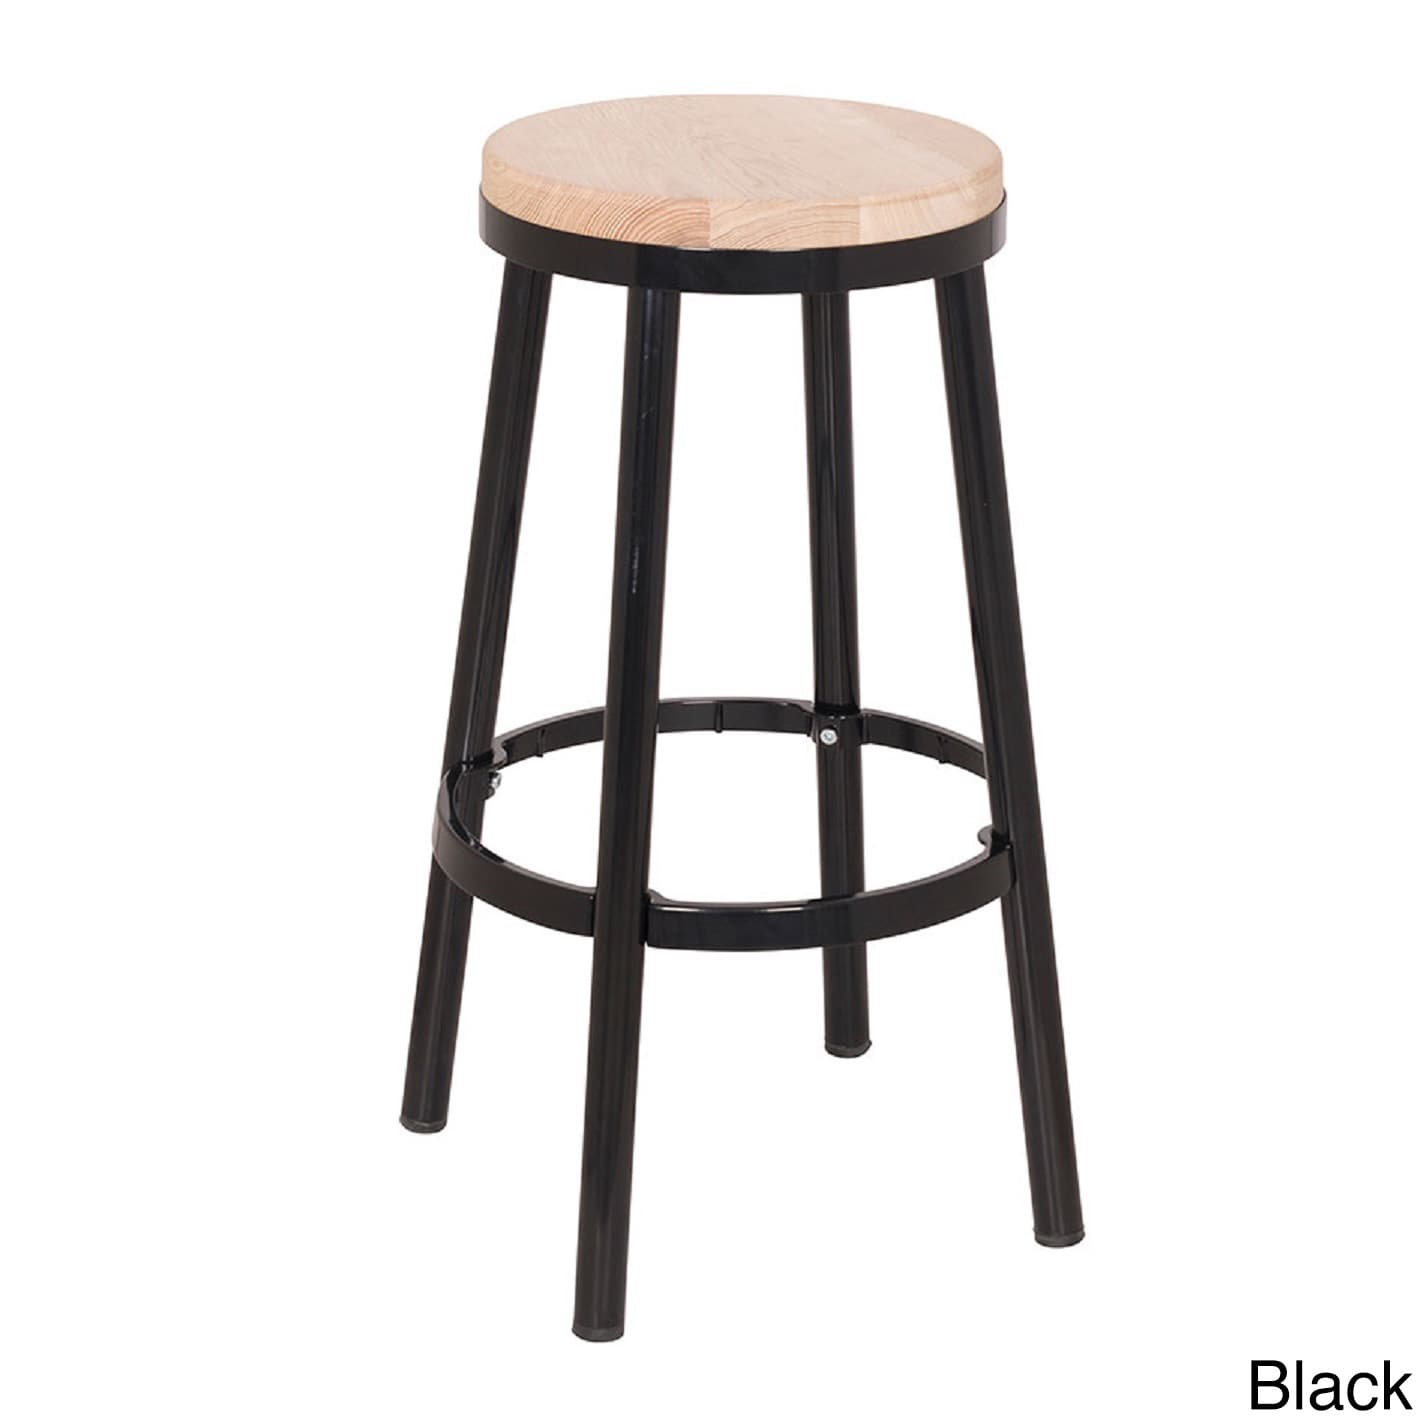 Shop Modern Round Backless Metal And Ash Wood 26 Inch Bar Stool Overstock 9043905